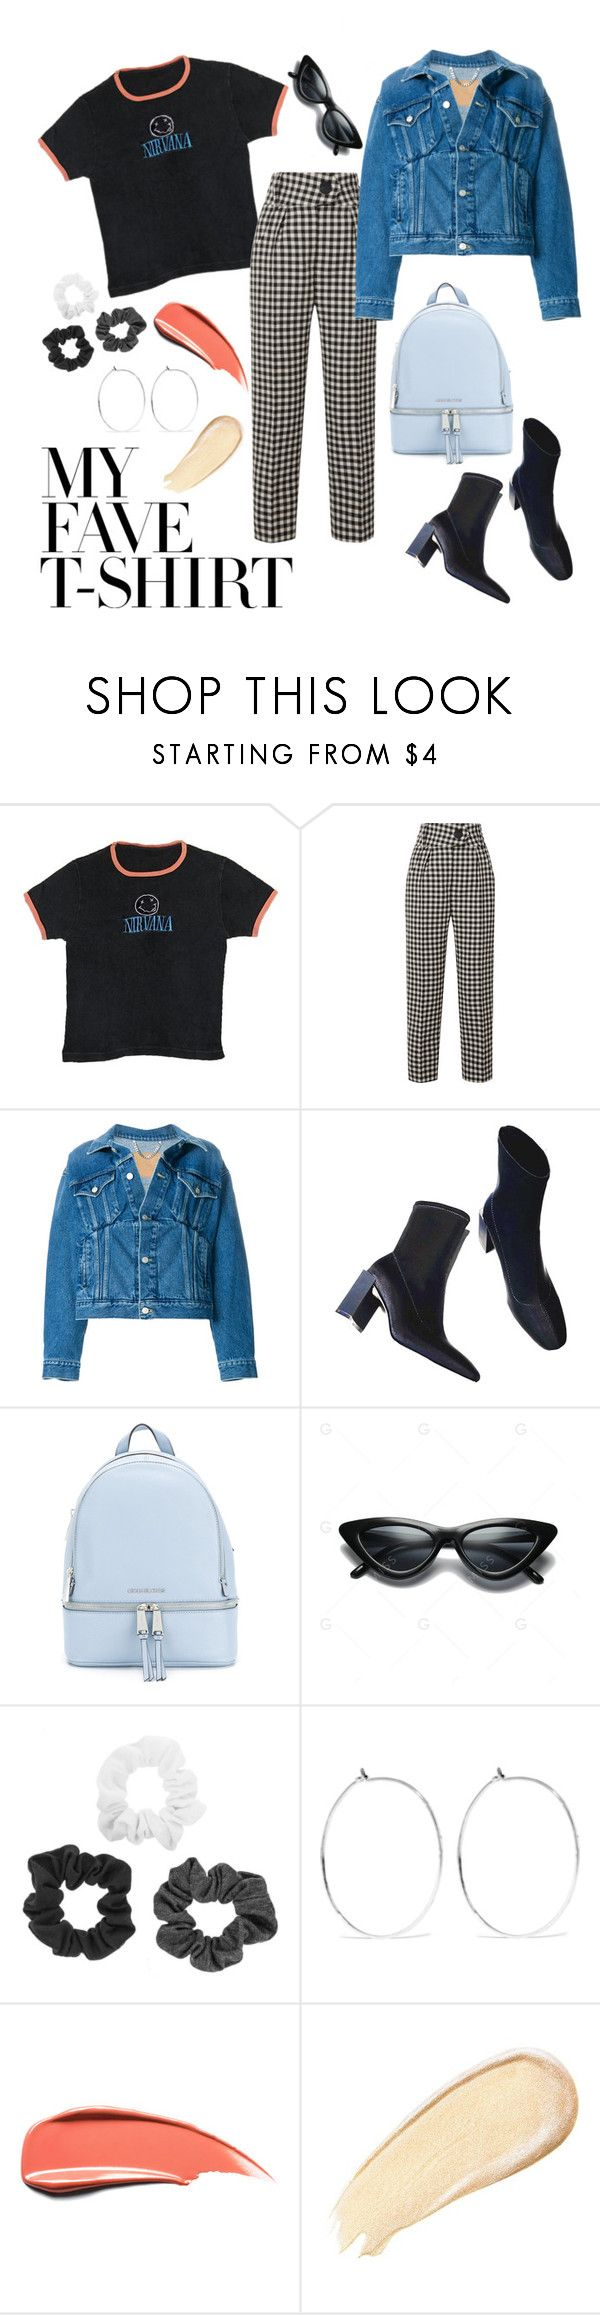 """""""T-shirt dressed up"""" by abigail-akc ❤ liked on Polyvore featuring Petar Petrov, Balenciaga, MICHAEL Michael Kors, Catbird and MyFaveTshirt"""